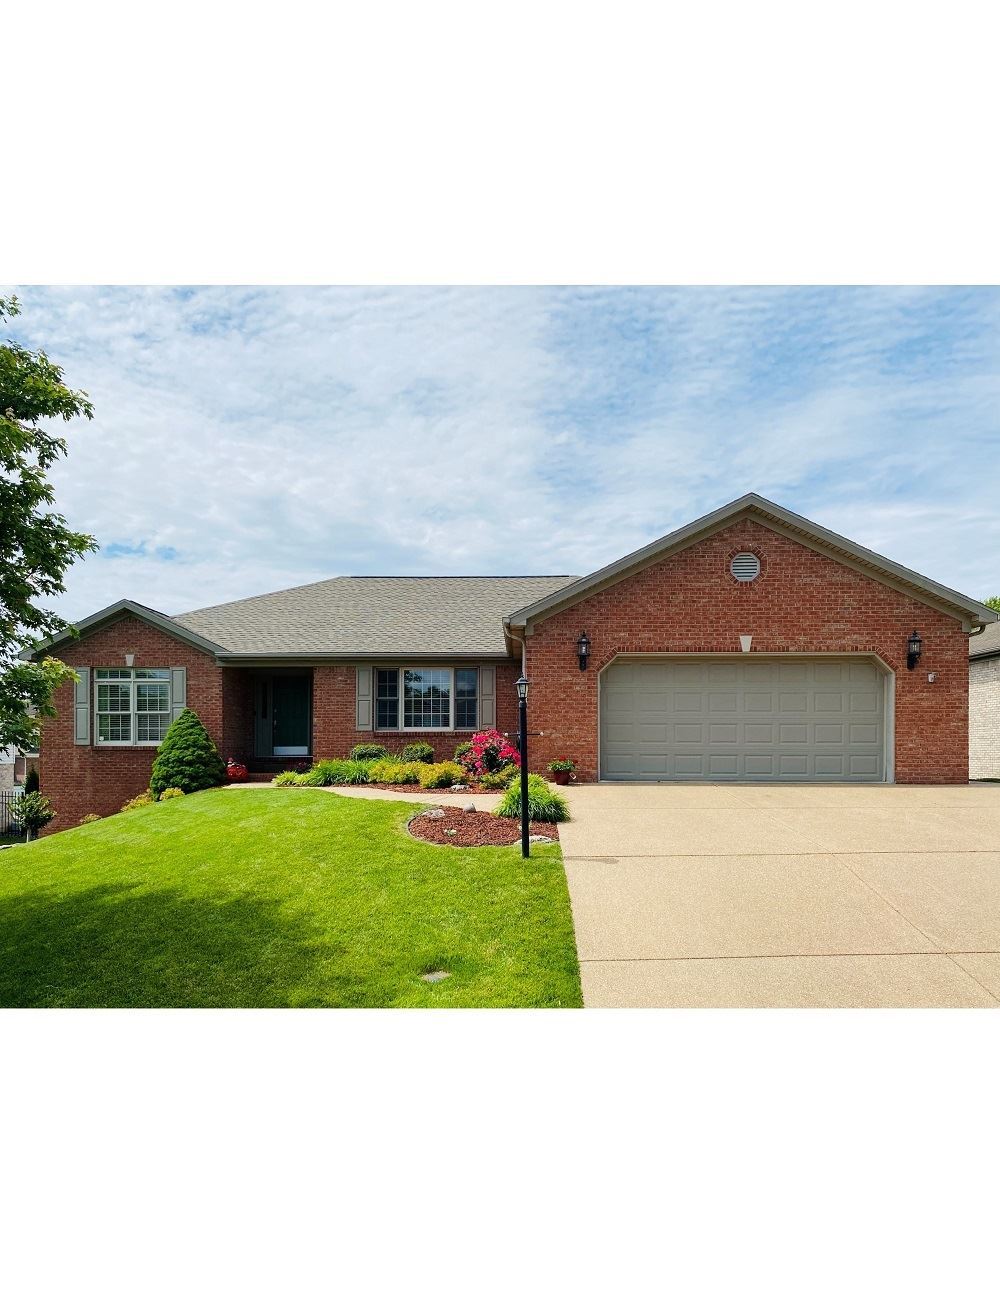 5638 Quaker Bridge Drive, Evansville, IN 47711 - #: 202018877